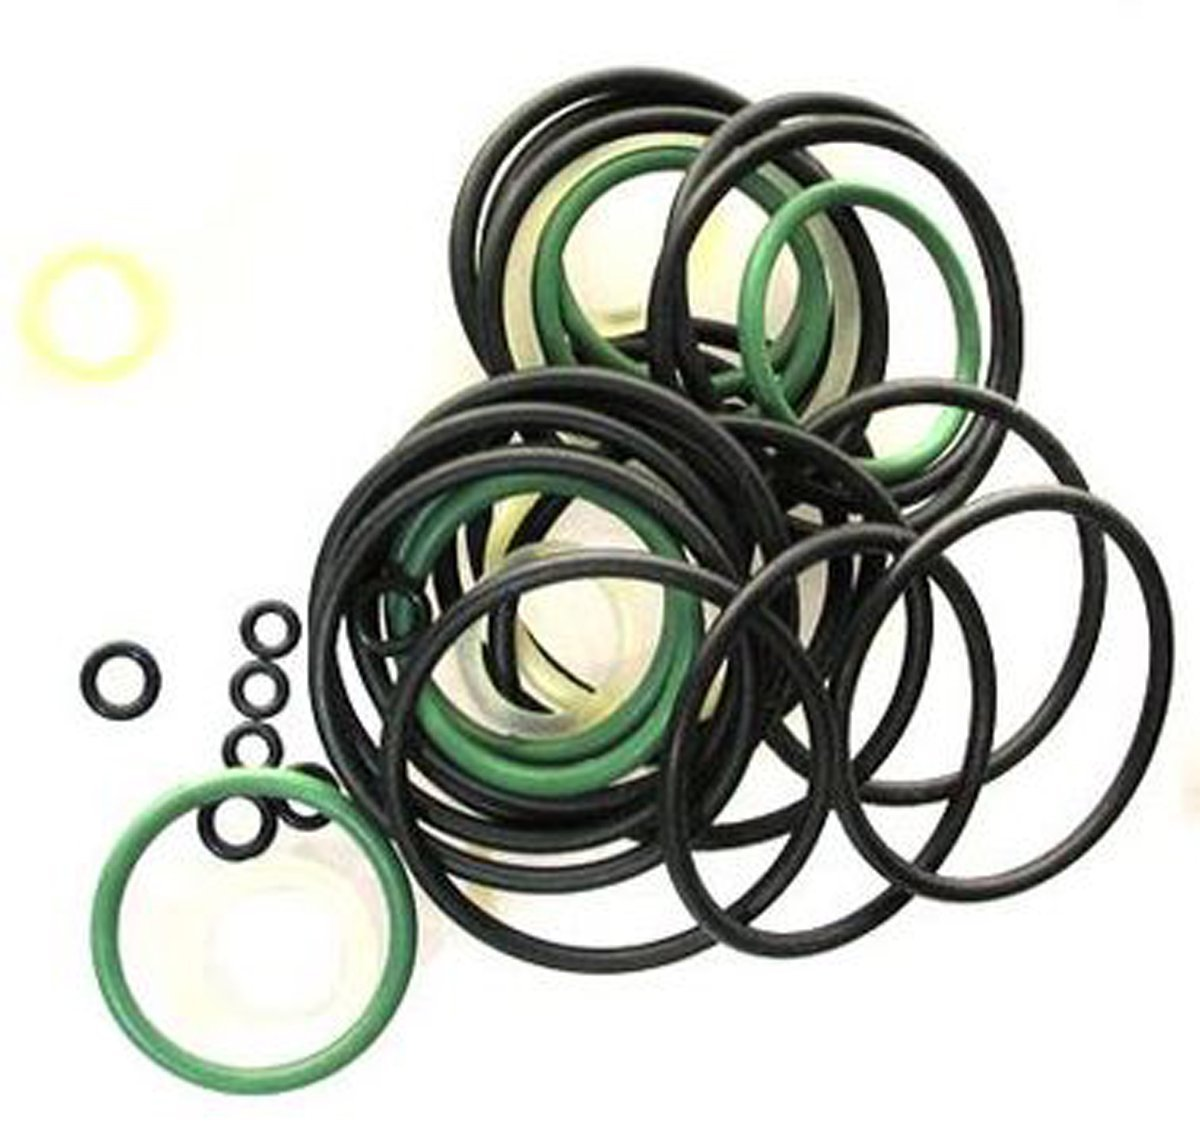 Smart Parts Shocker SFT / NXT Seal Kit - OEM O-ring Kit by Smart Parts